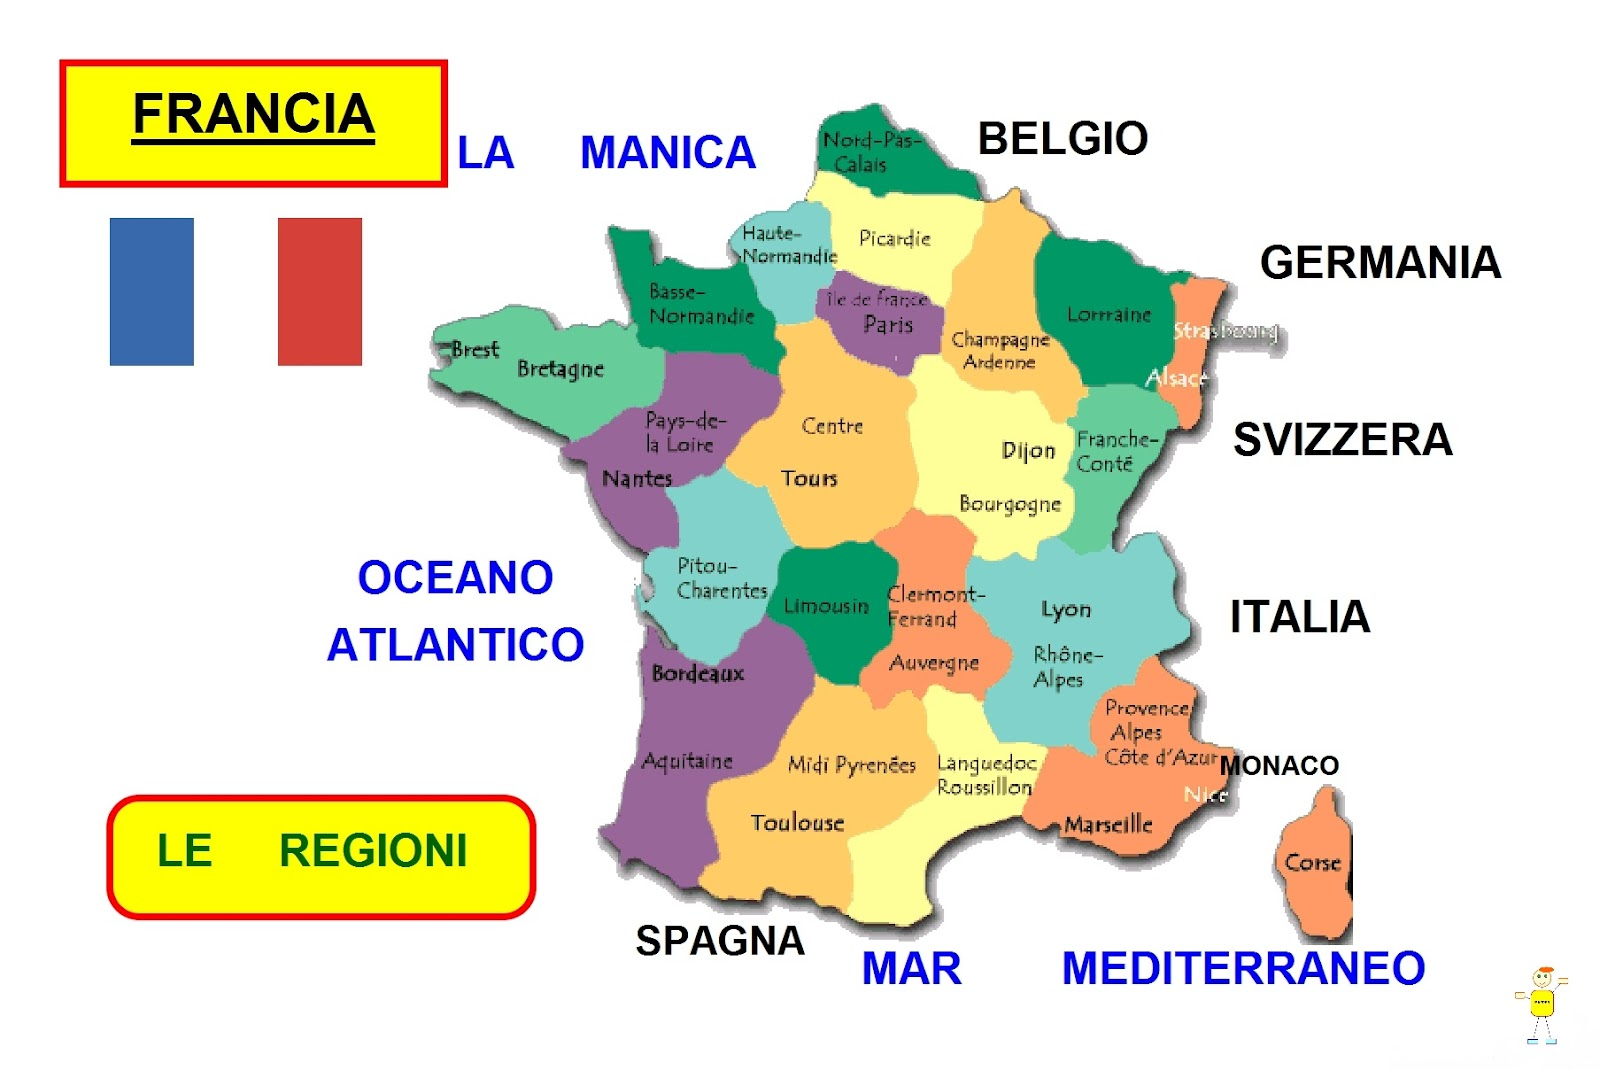 download image regioni francia pc android iphone and ipad